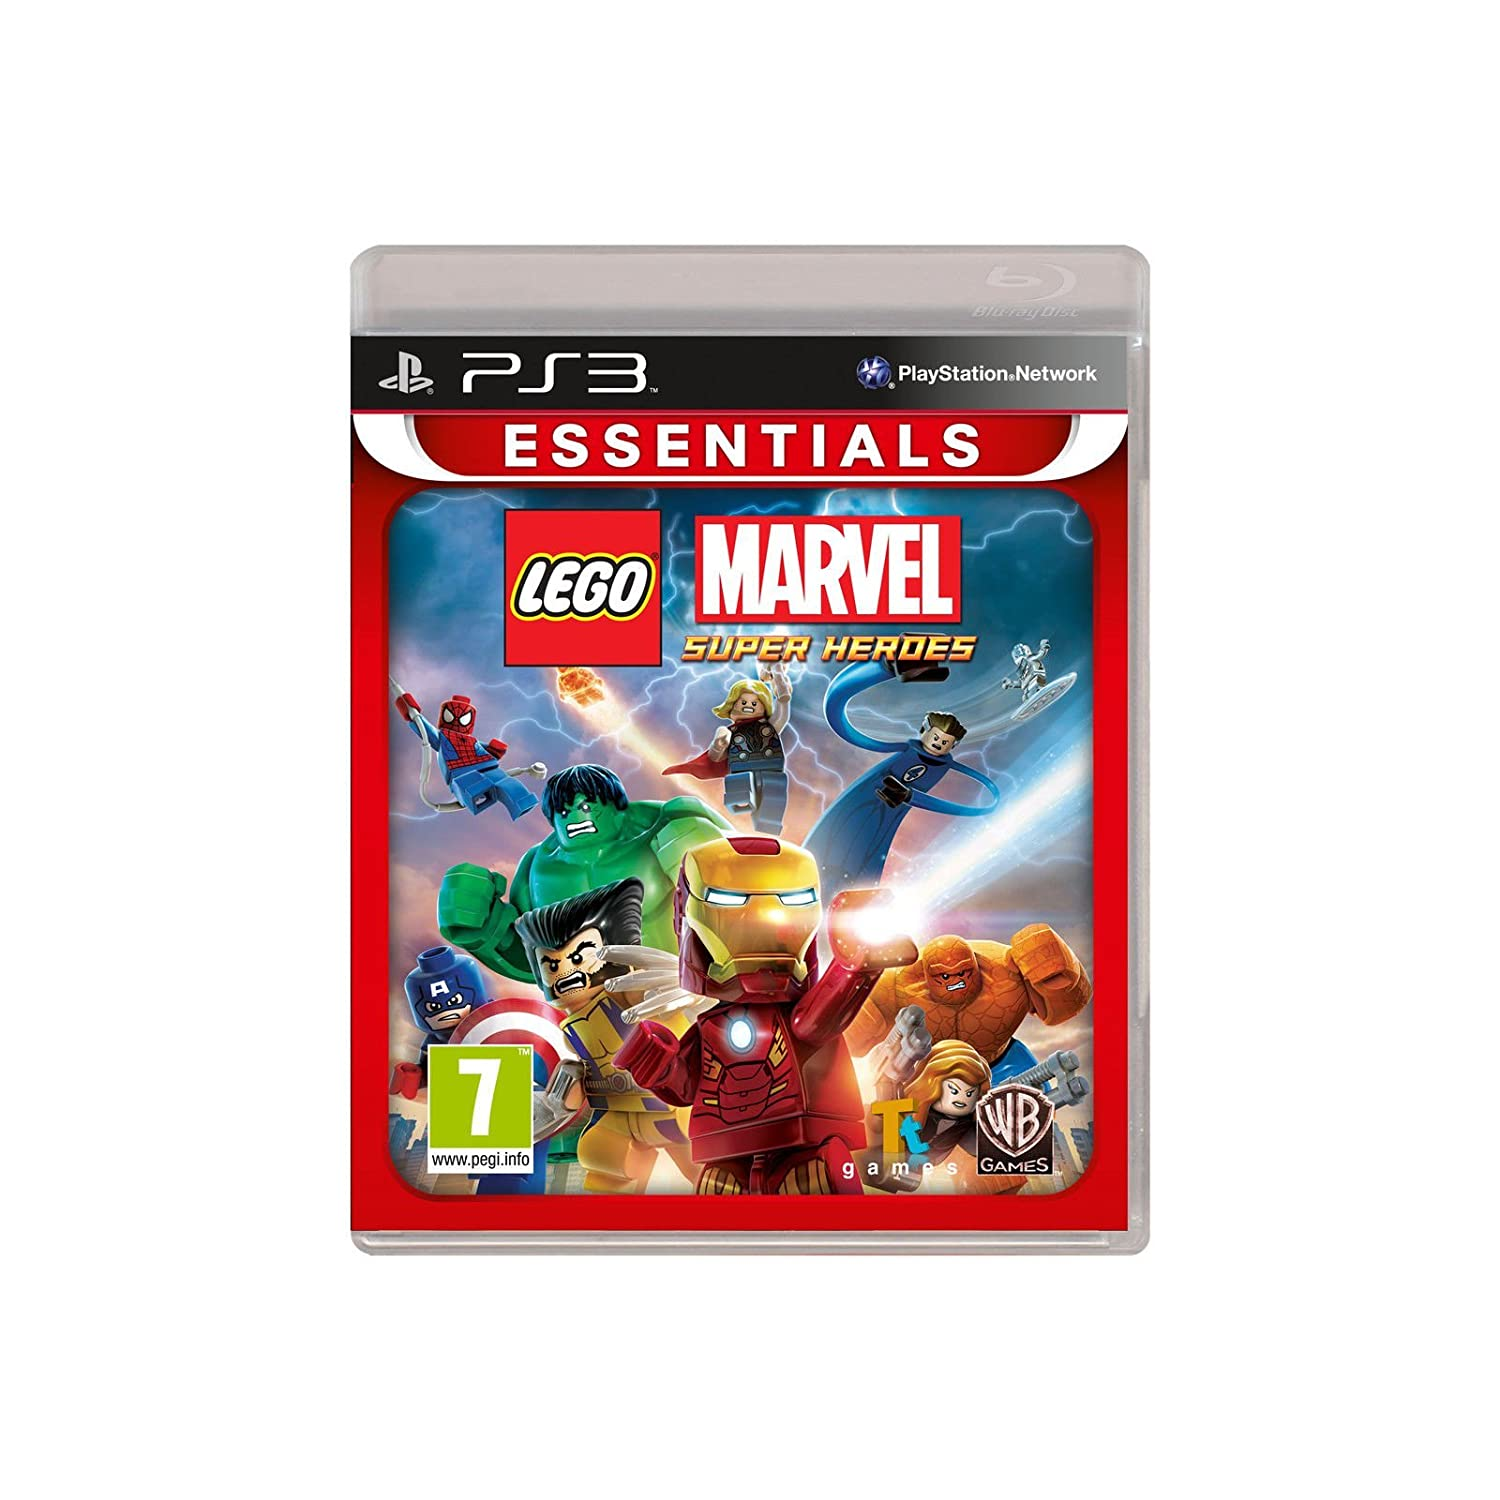 ps3 lego marvel super heroes spiel f r sony playstation 3. Black Bedroom Furniture Sets. Home Design Ideas